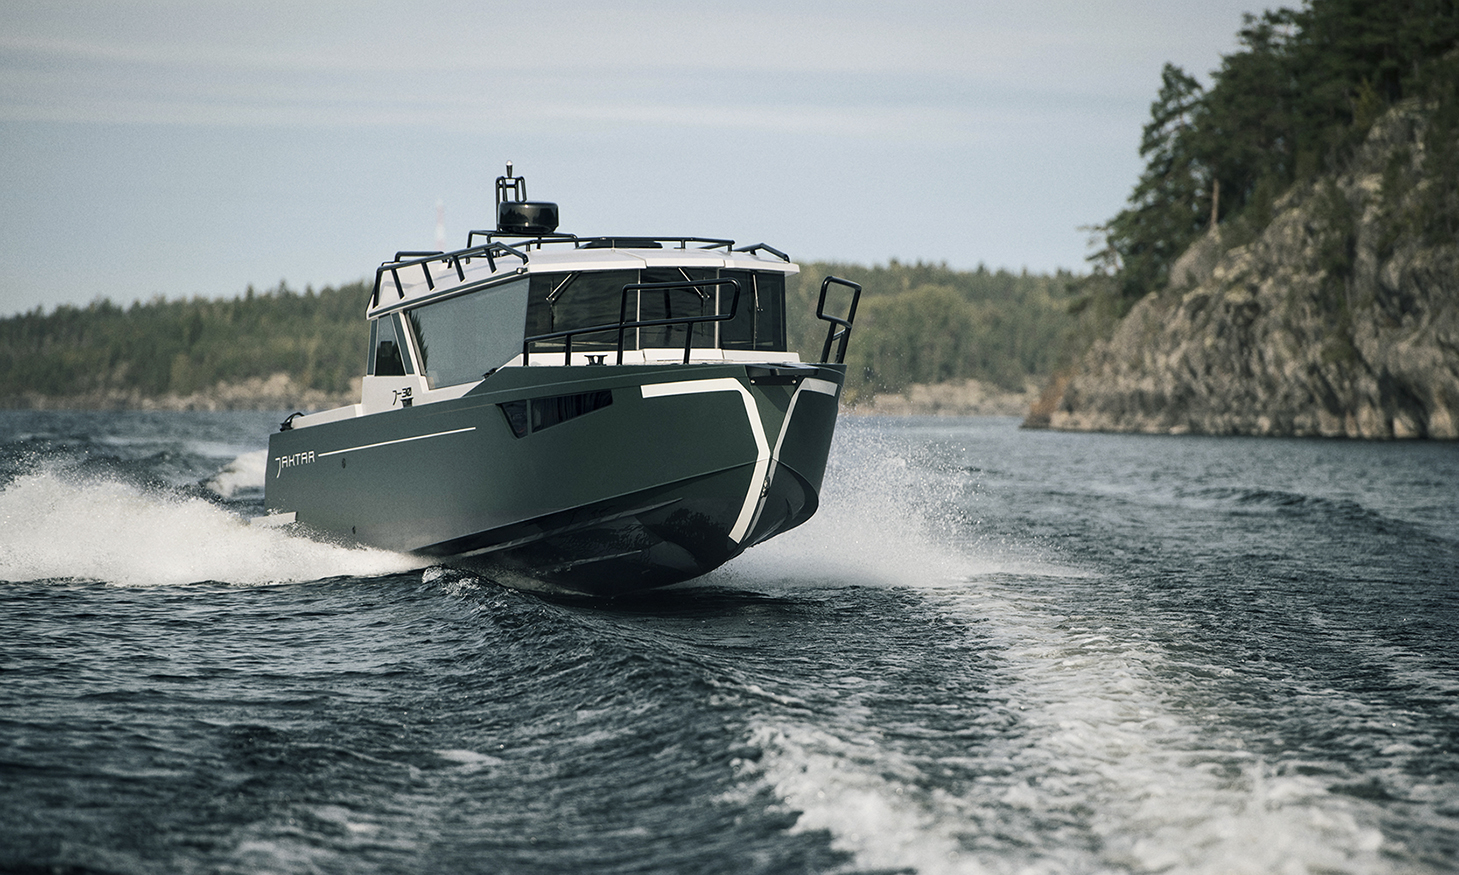 Branding Design by Bedow for a Boat Built for the Far North